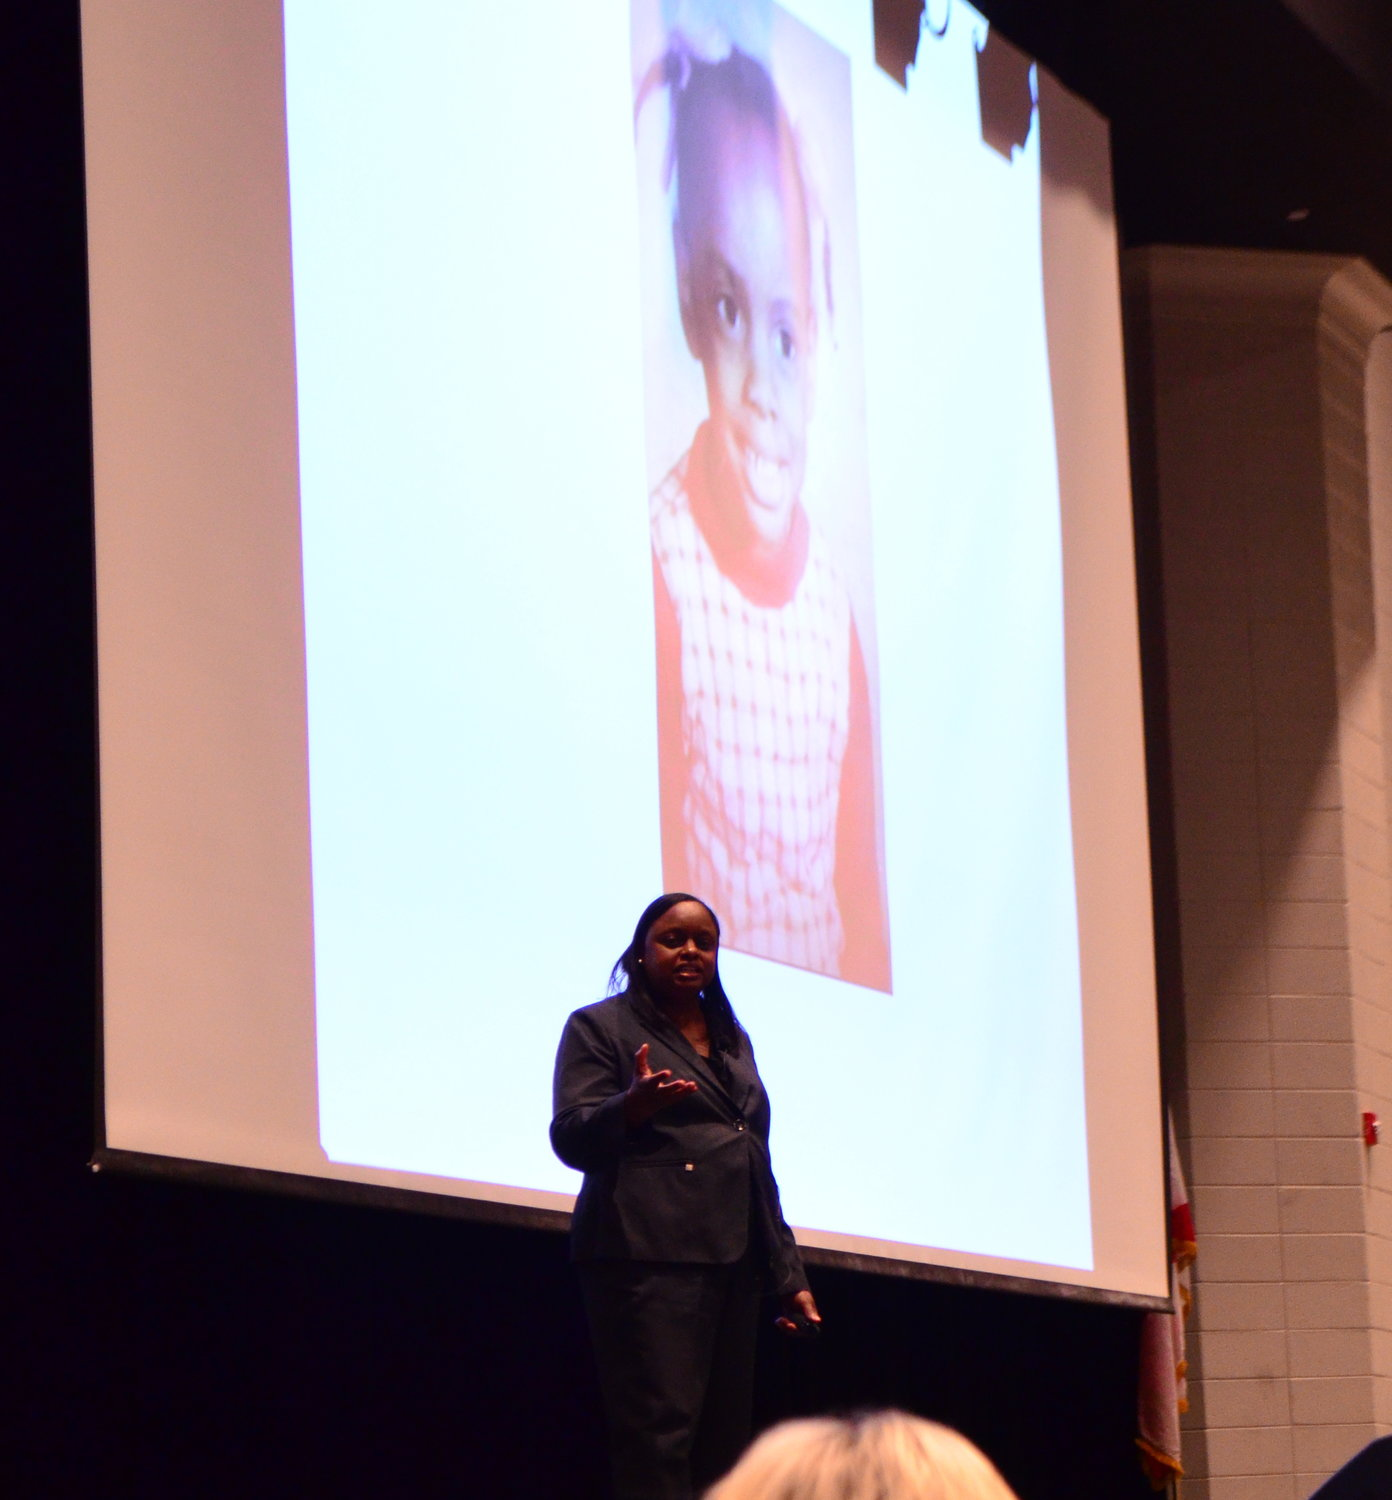 Liz Huntley described her childhood to a crowd at Jasper High School on Wednesday and shared how educators changed her life.